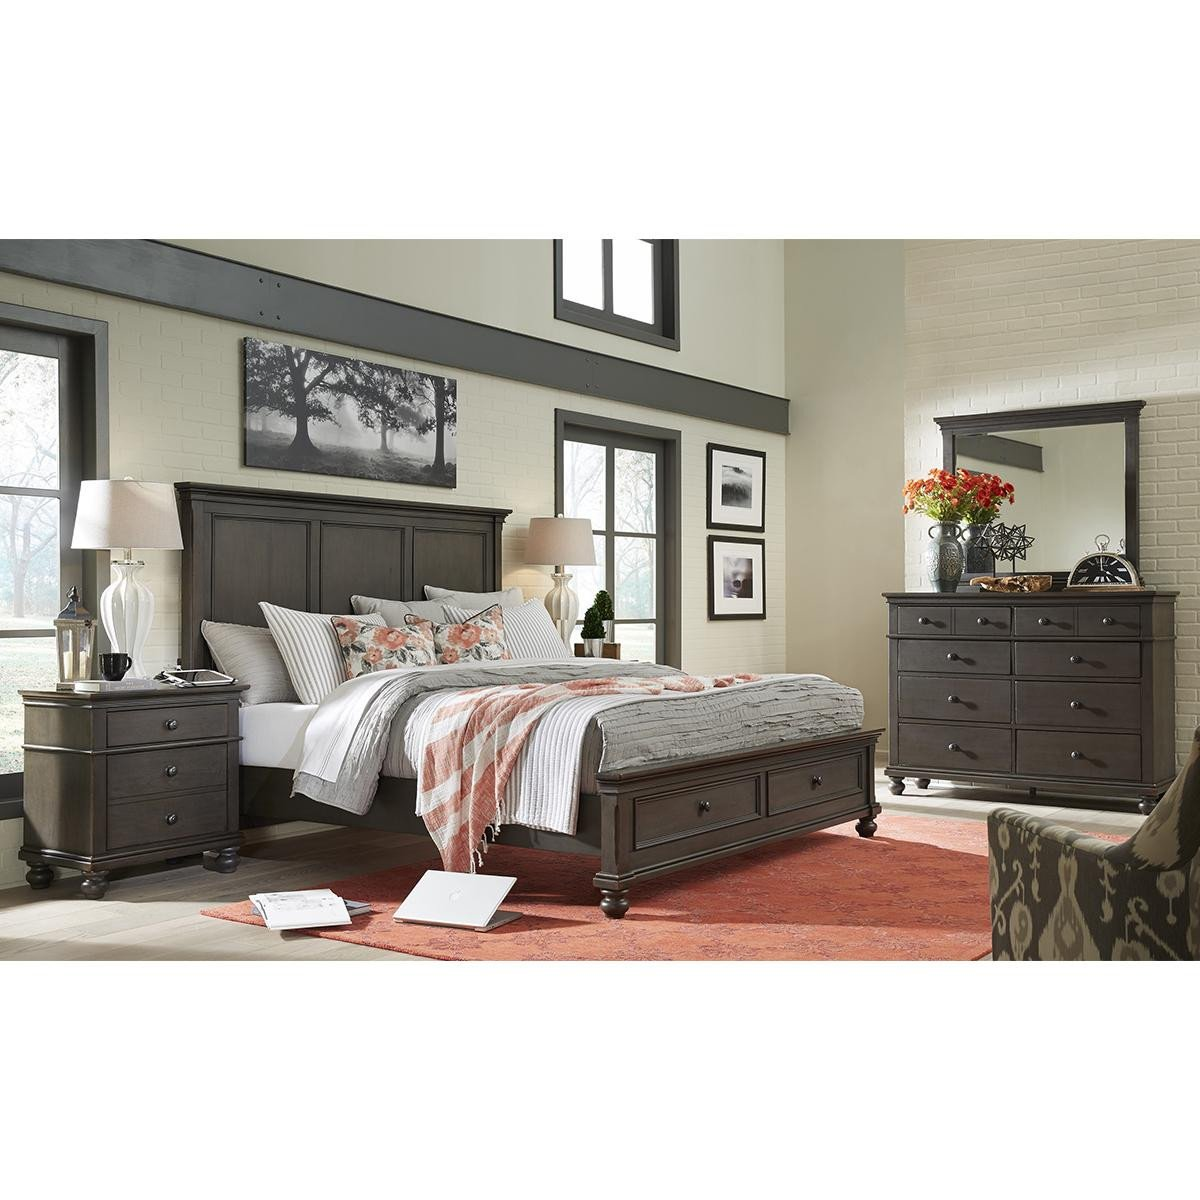 Bedroom Storage Bench Seat Awesome Riva Ridge Oxford 4 Piece Queen Bedroom Set In Peppercorn